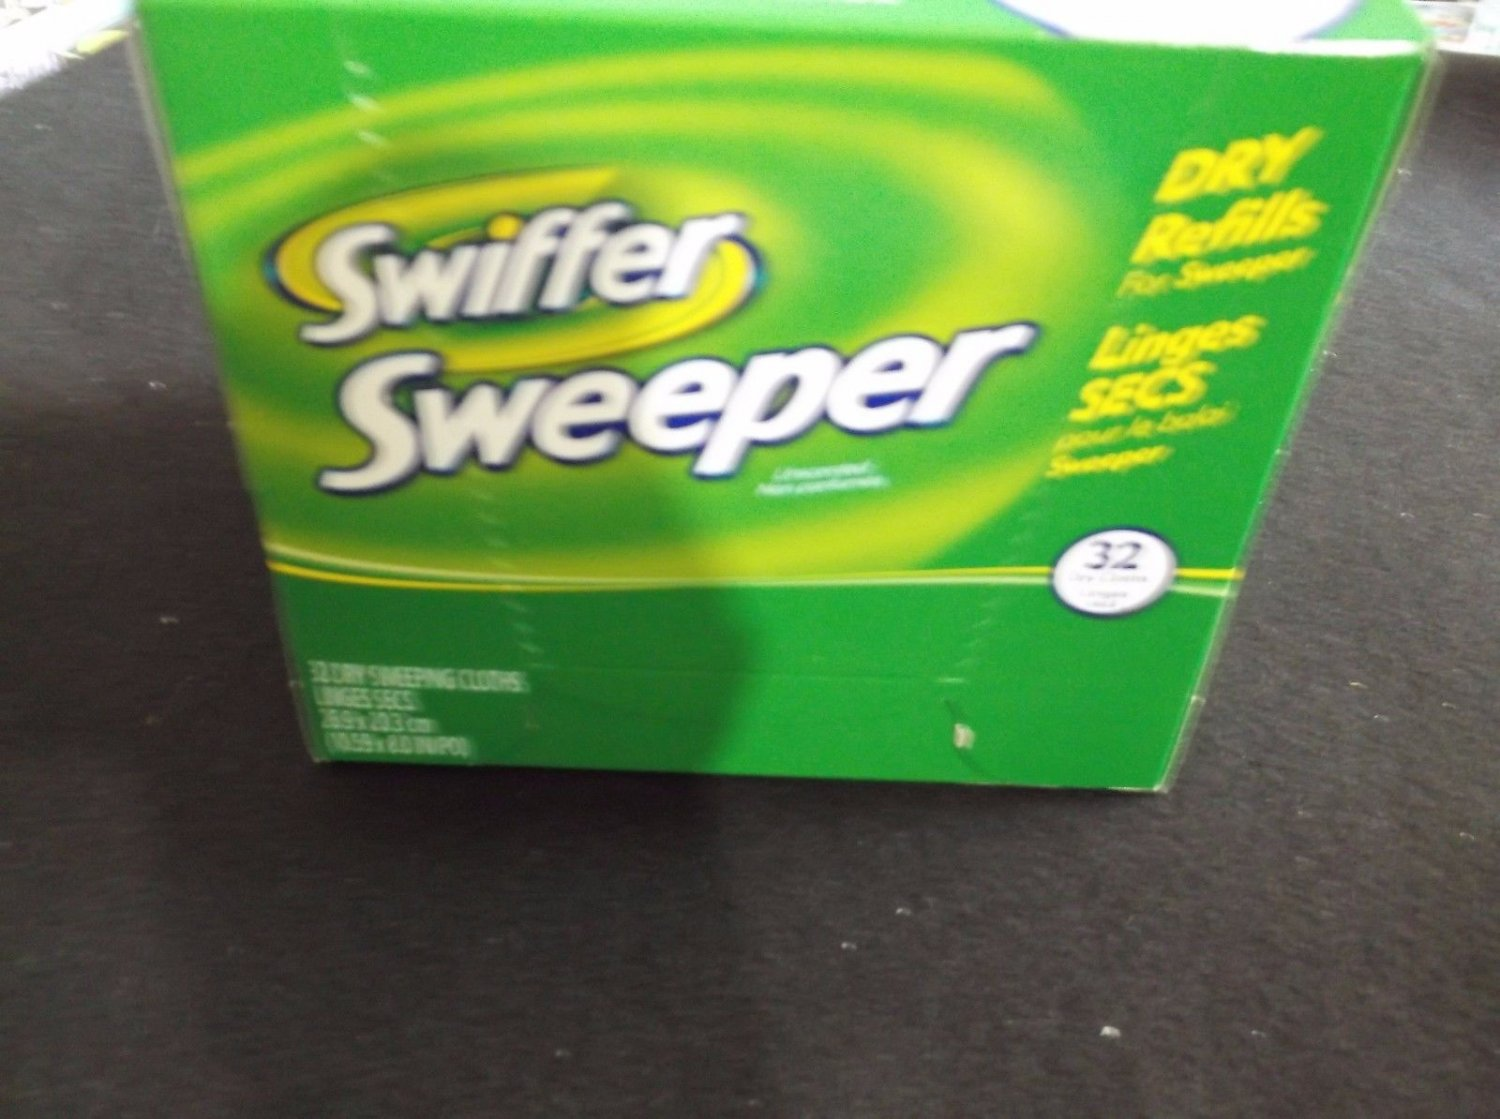 Swiffer sweeper dry refills for sweeper unscented 32 dry sweeping cloths